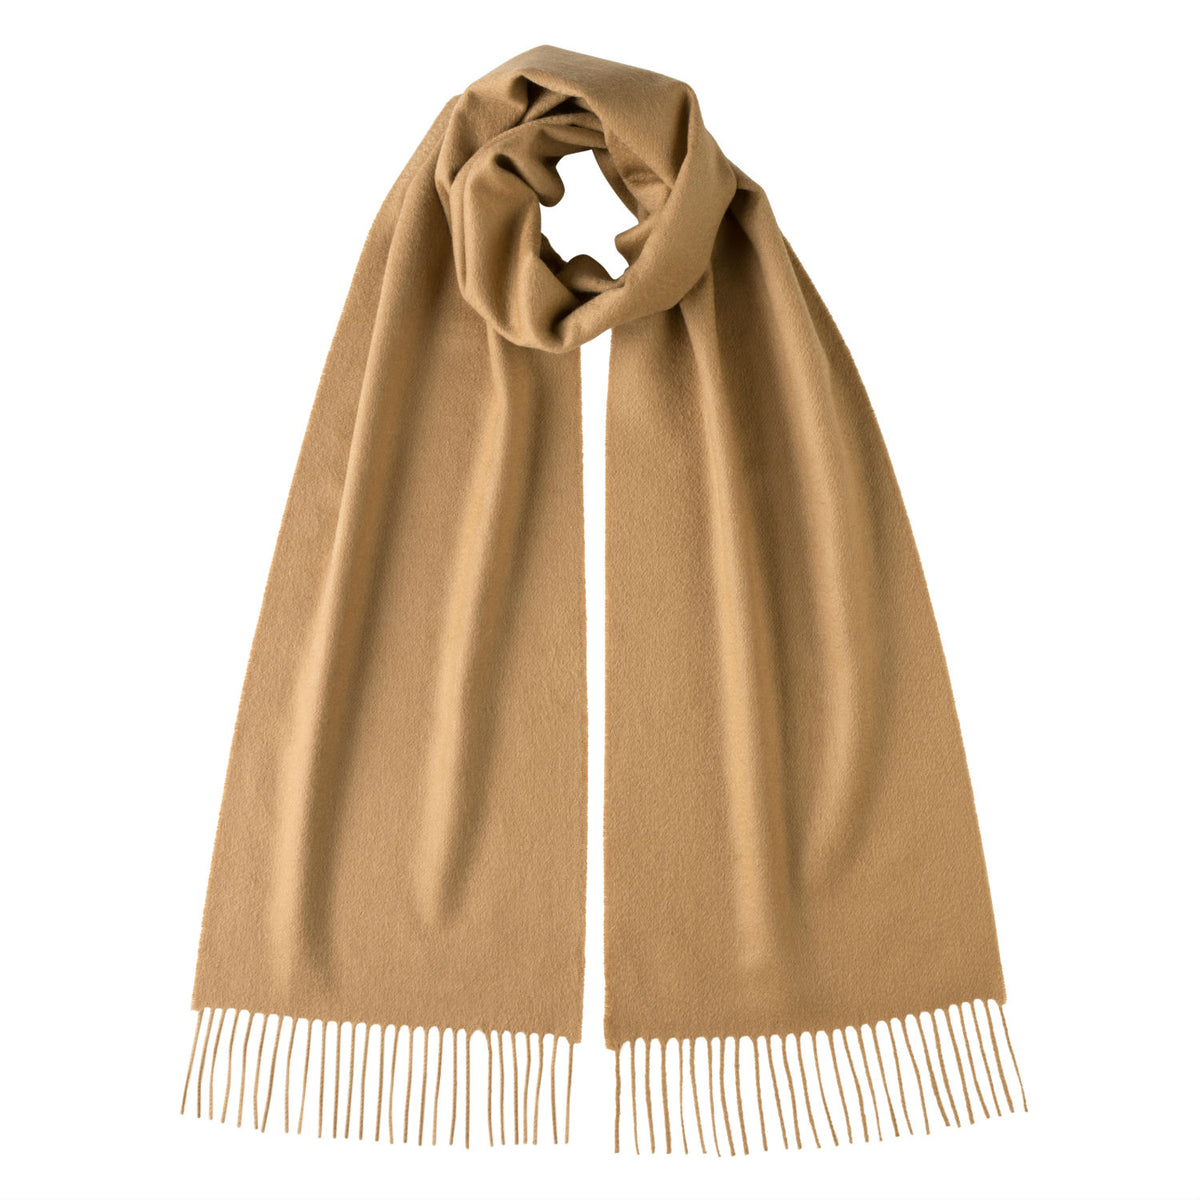 Johnsons of Elgin | Johnston Cashmere | Camel Beige Cashmere Scarf | buy at The Cashmere Choice | London